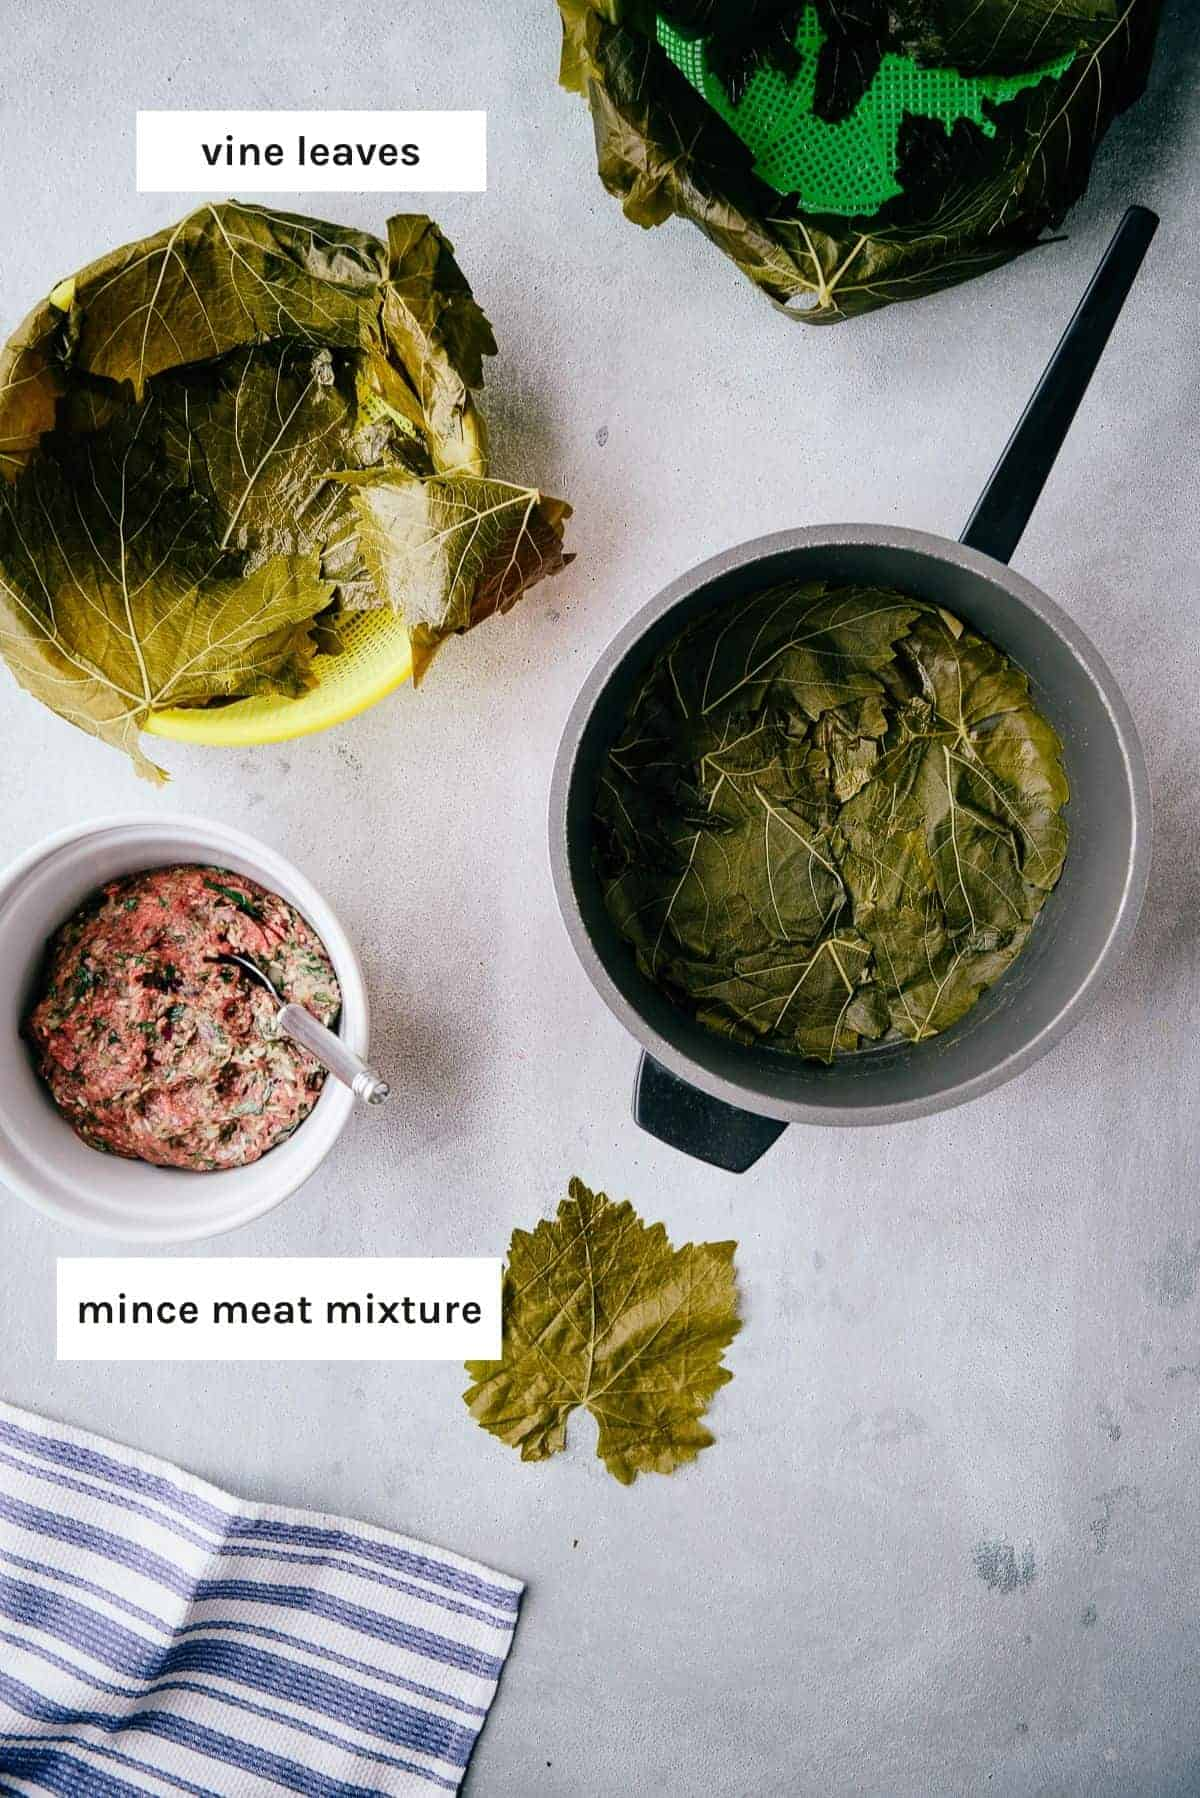 brined vine leaves and ground meat on a grey table